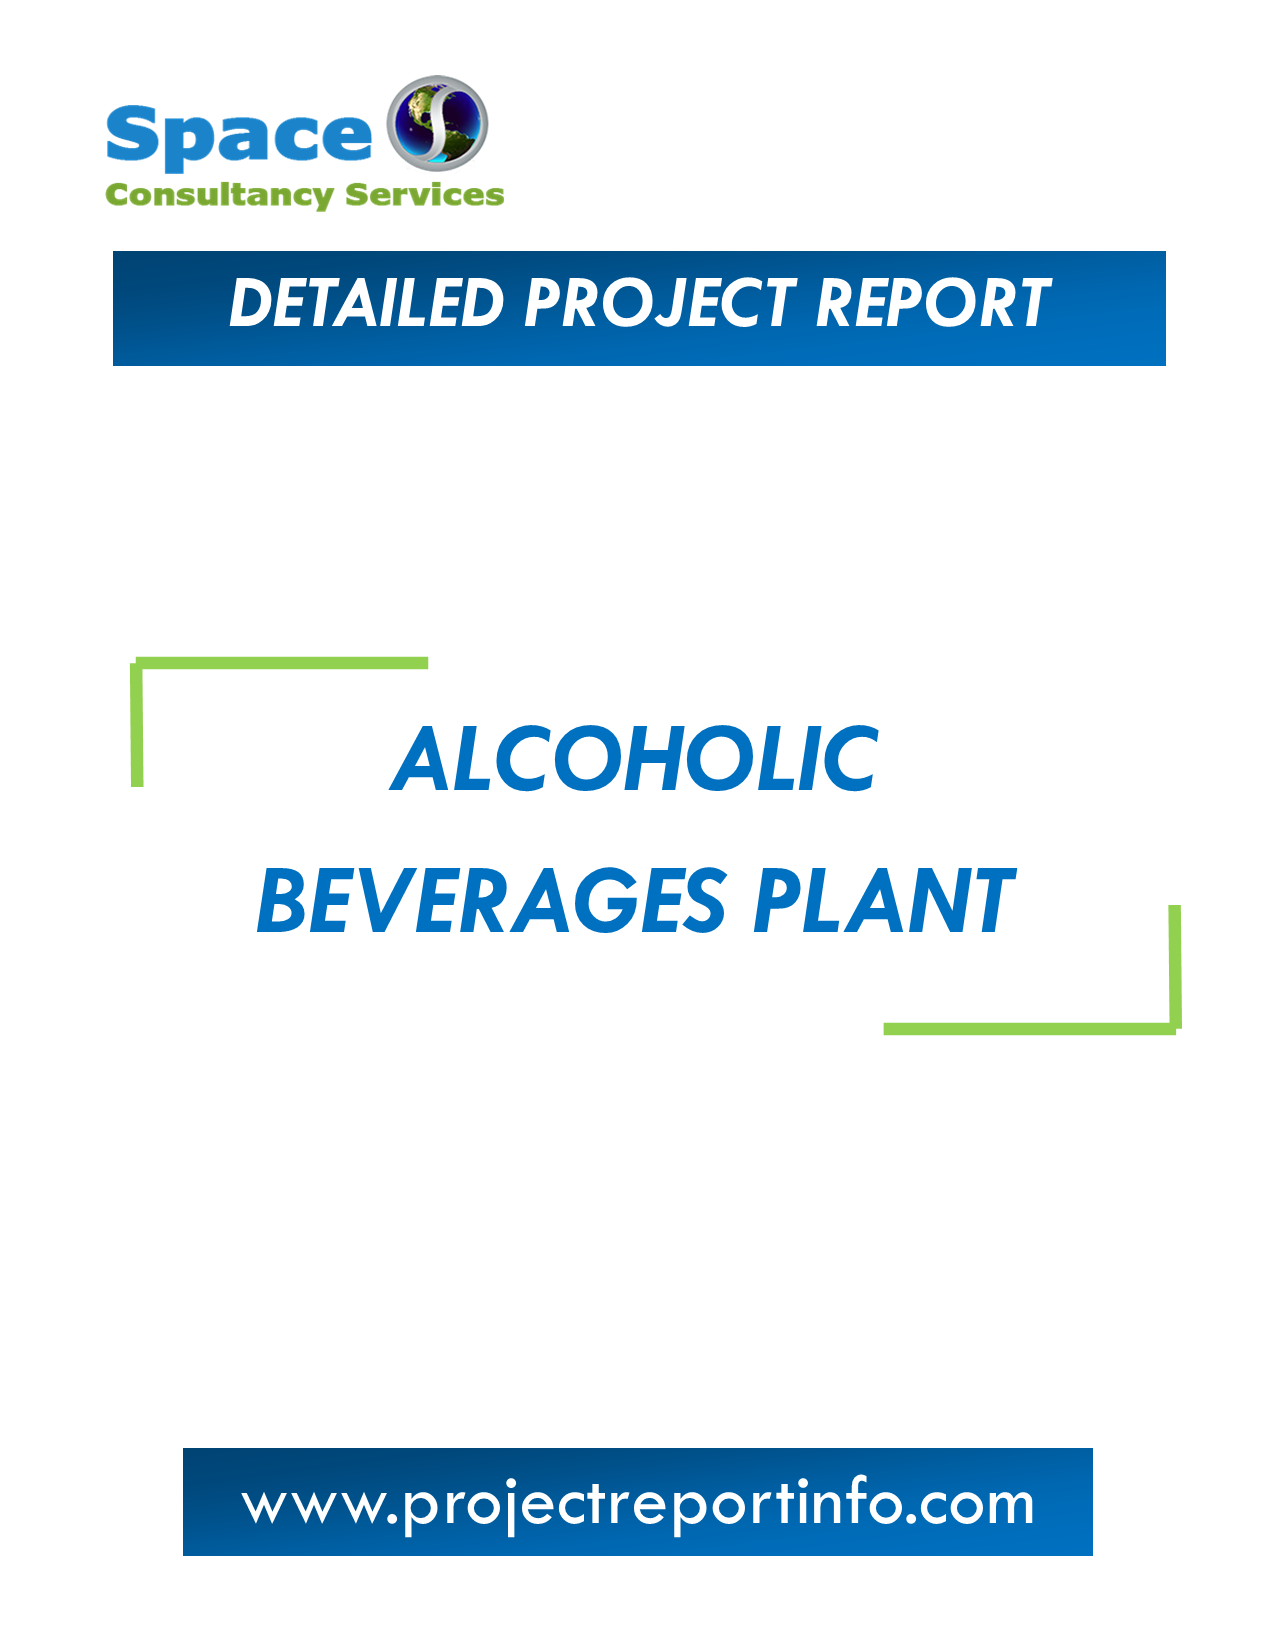 Project Report on Alcoholic Beverages Plant